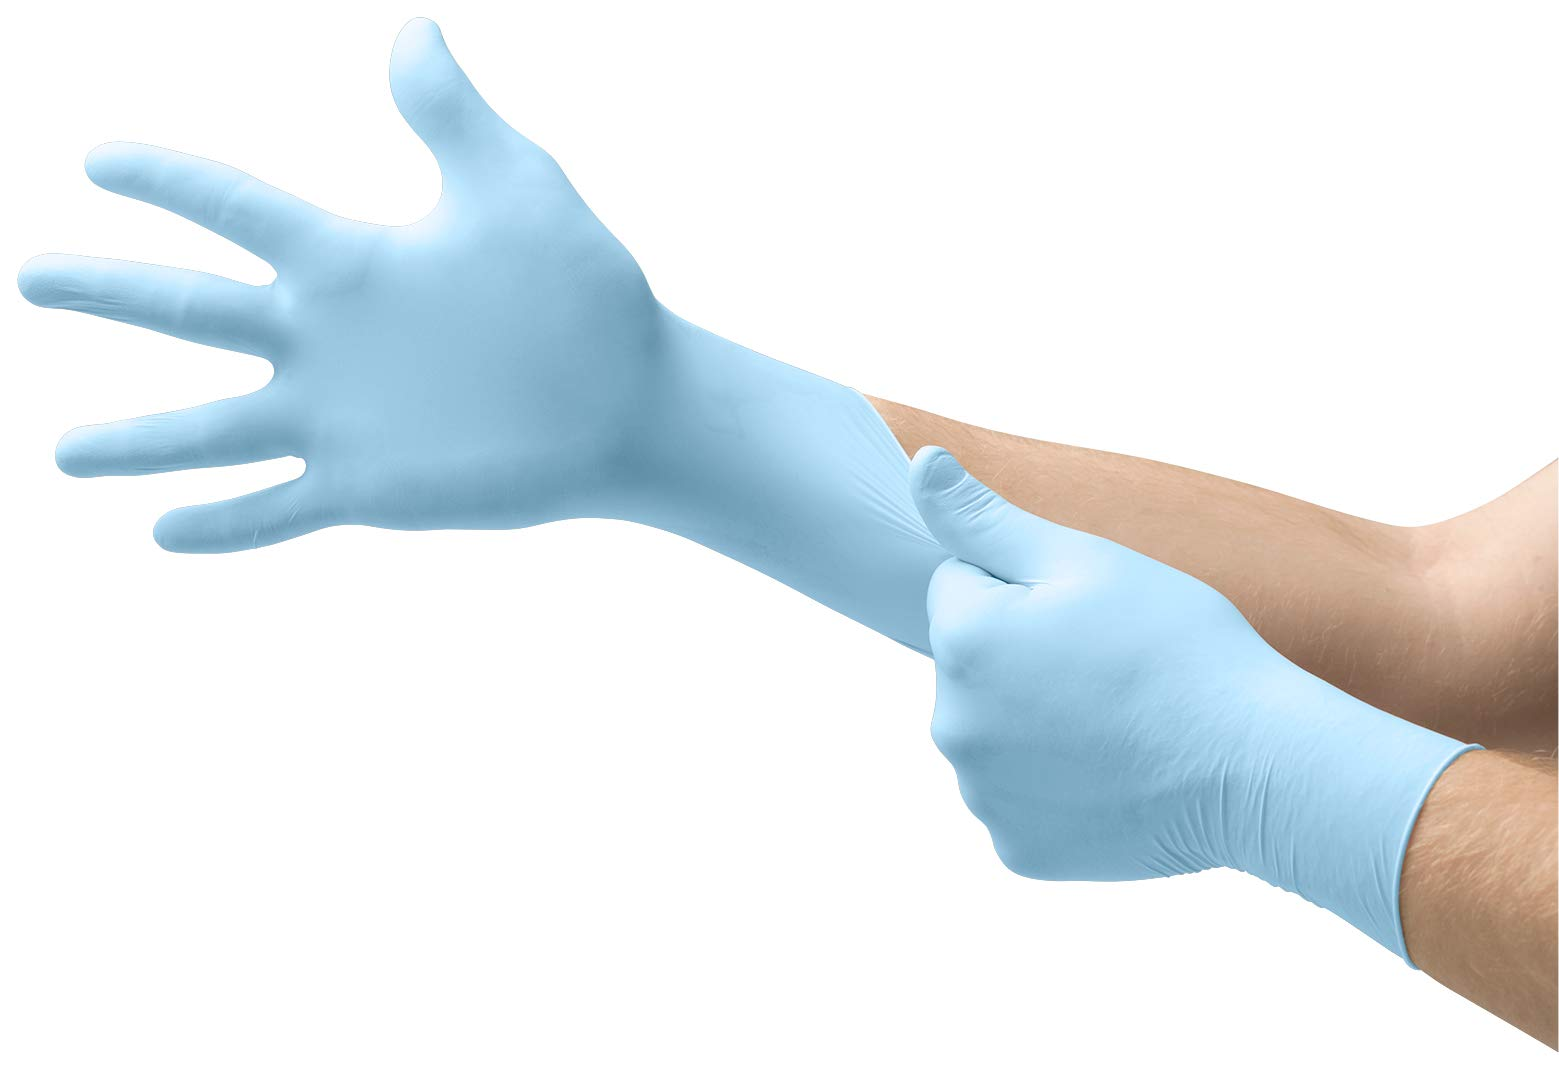 Microflex XCEED-XC310 Disposable Nitrile Gloves, Latex-Free, Powder-Free Glove for Cleaning, Mechanics, Automotive, Industrial, Food Handling or Medical applications, Blue , Size Medium, Case of 2500 Units by Mircoflex